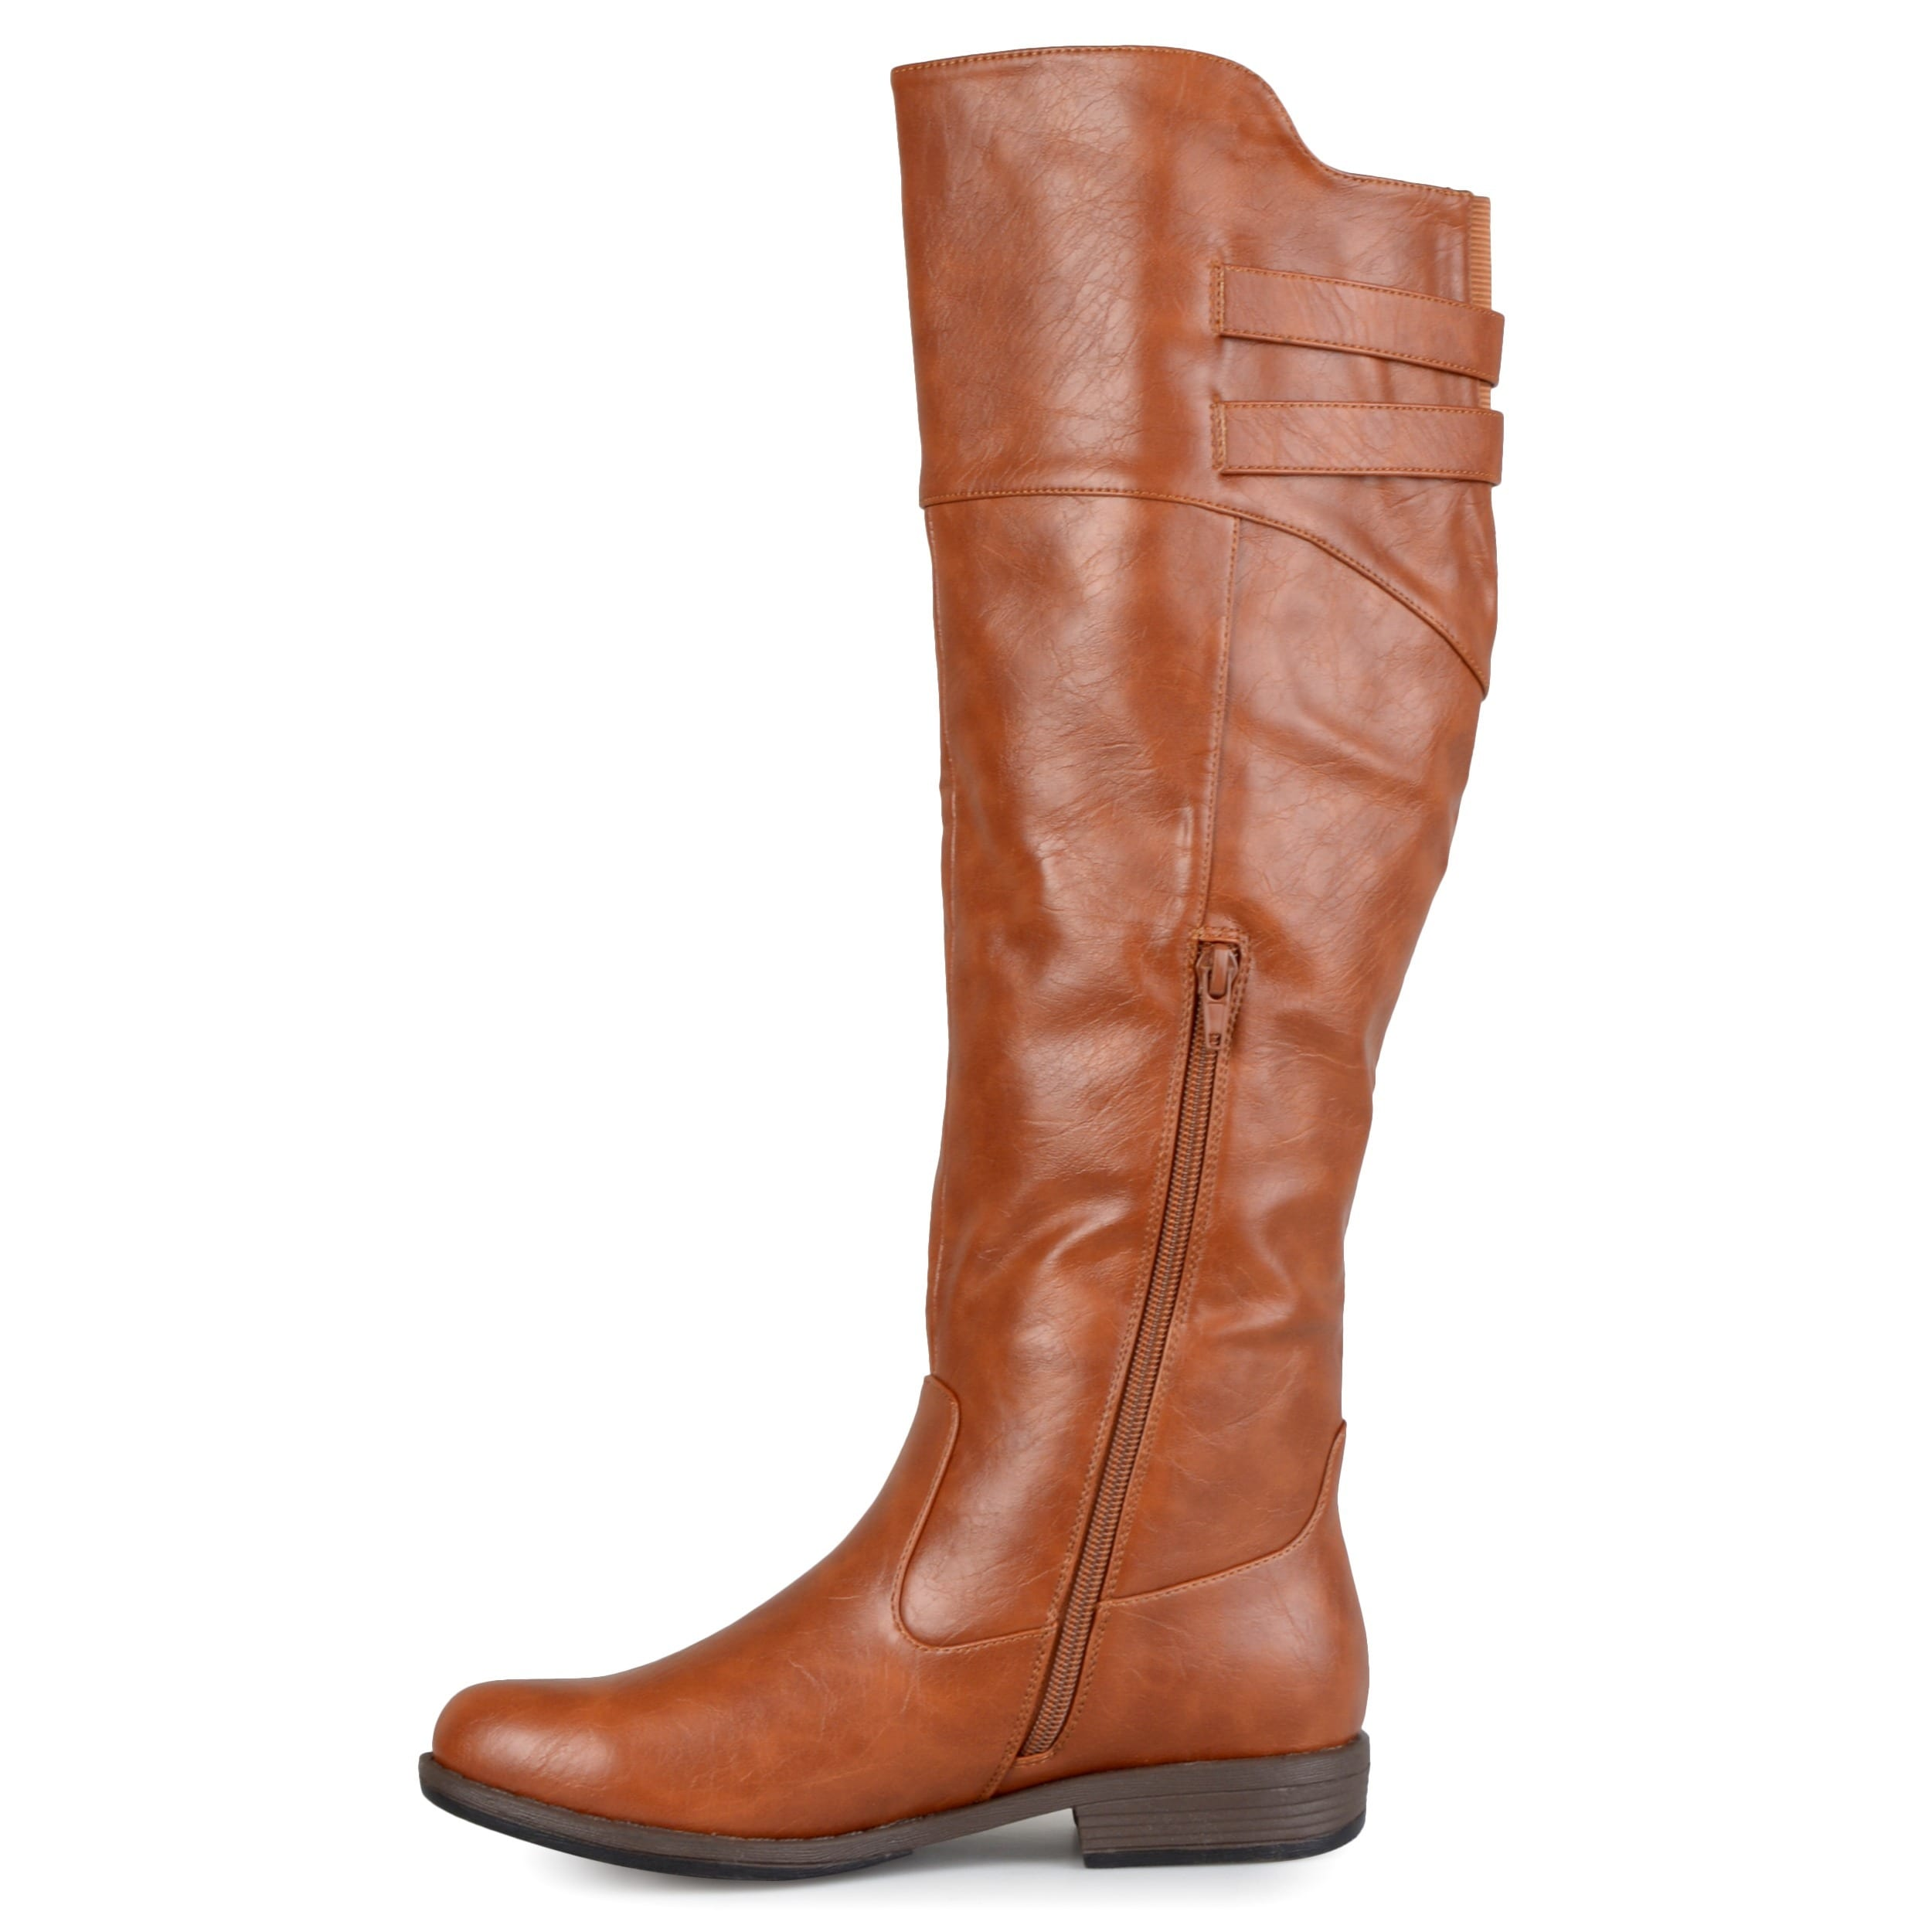 92f5156b0e0 Shop Journee Collection Women s  Tori  Regular and Wide-calf Double-Buckle  Knee-high Riding Boot - On Sale - Free Shipping Today - Overstock - 9346478